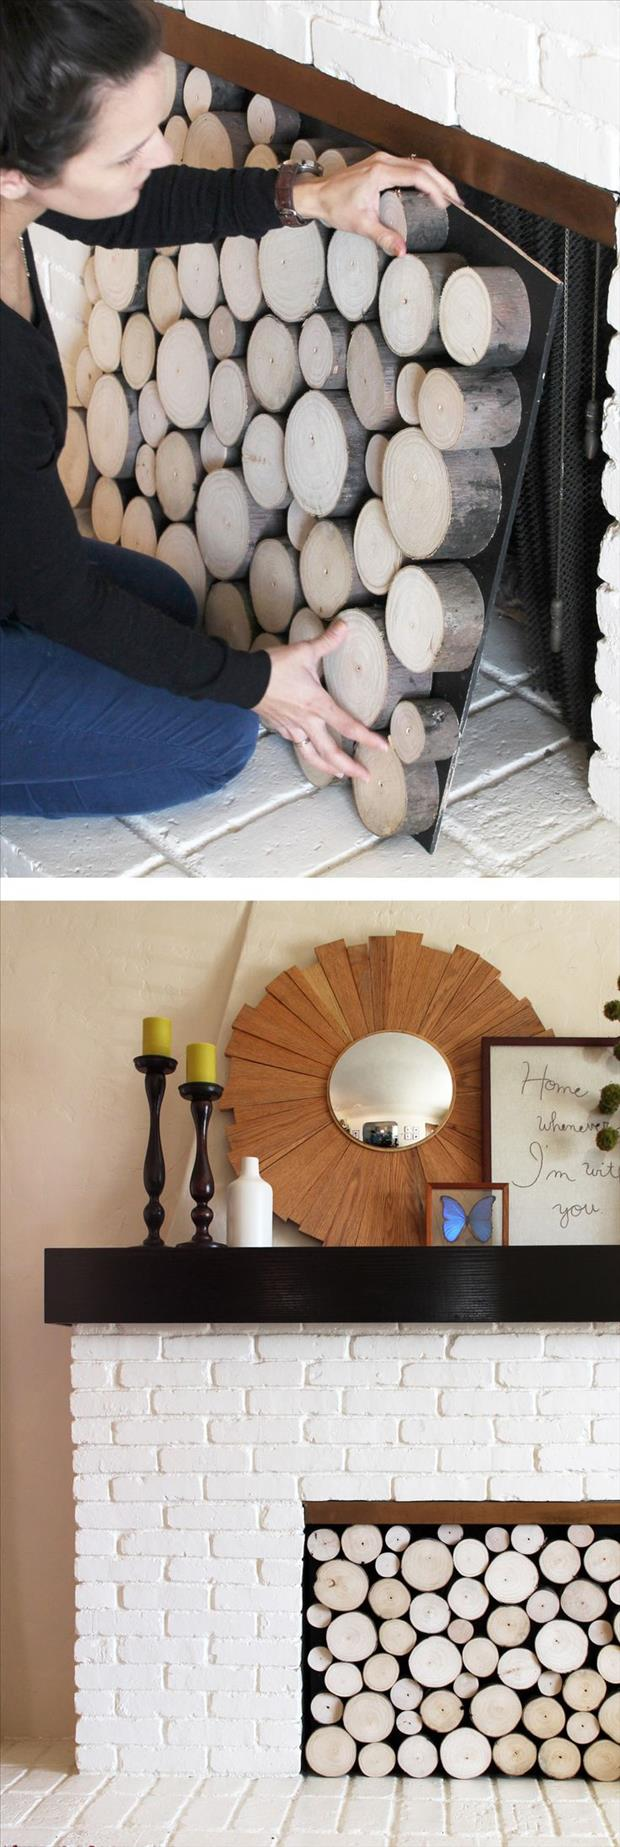 Fun do it yourself craft ideas 62 pics - Ideas to cover fireplace opening ...